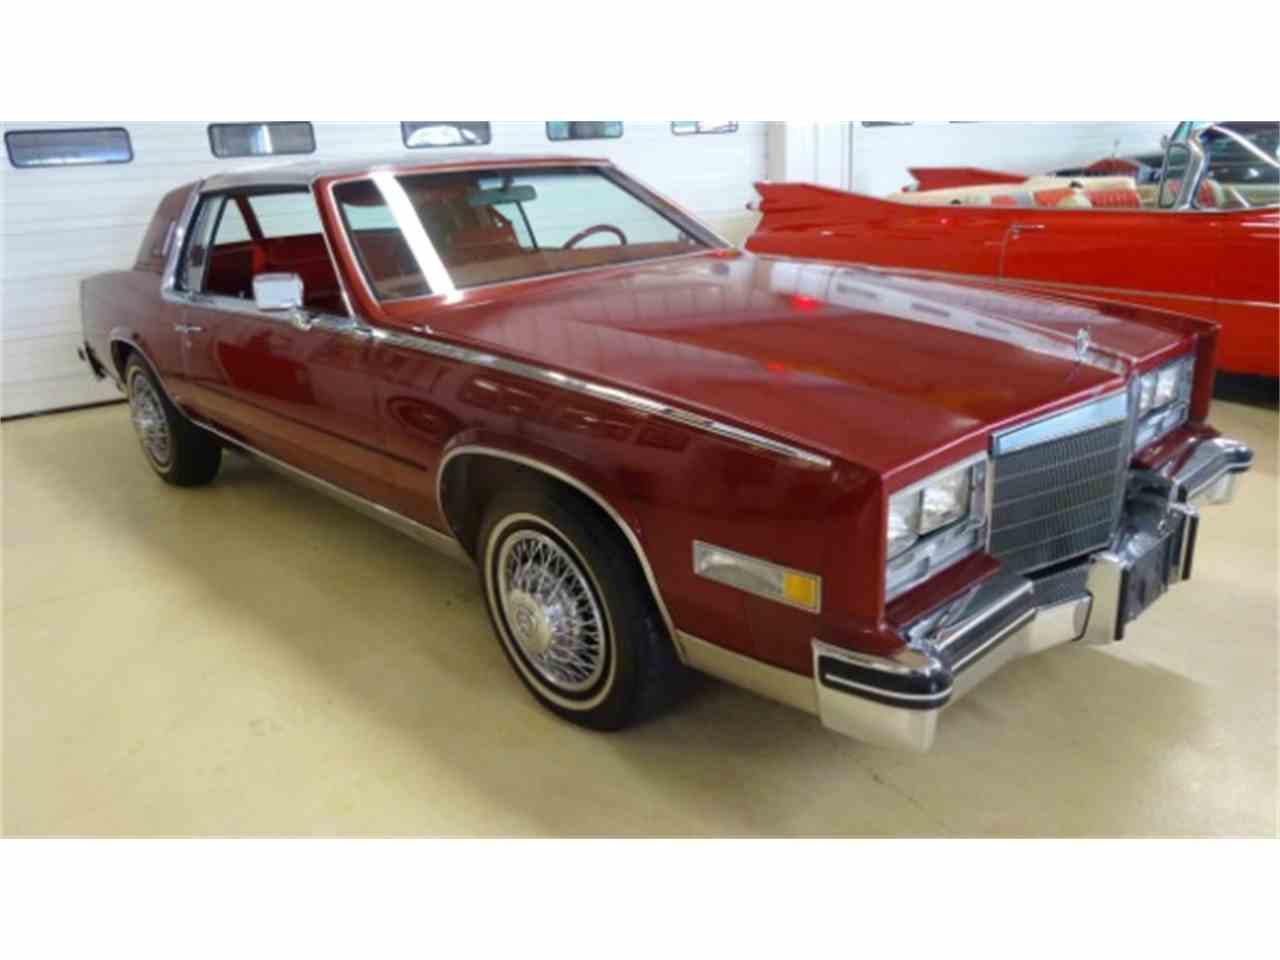 1985 Cadillac Eldorado Biarritz for Sale - CC-882239